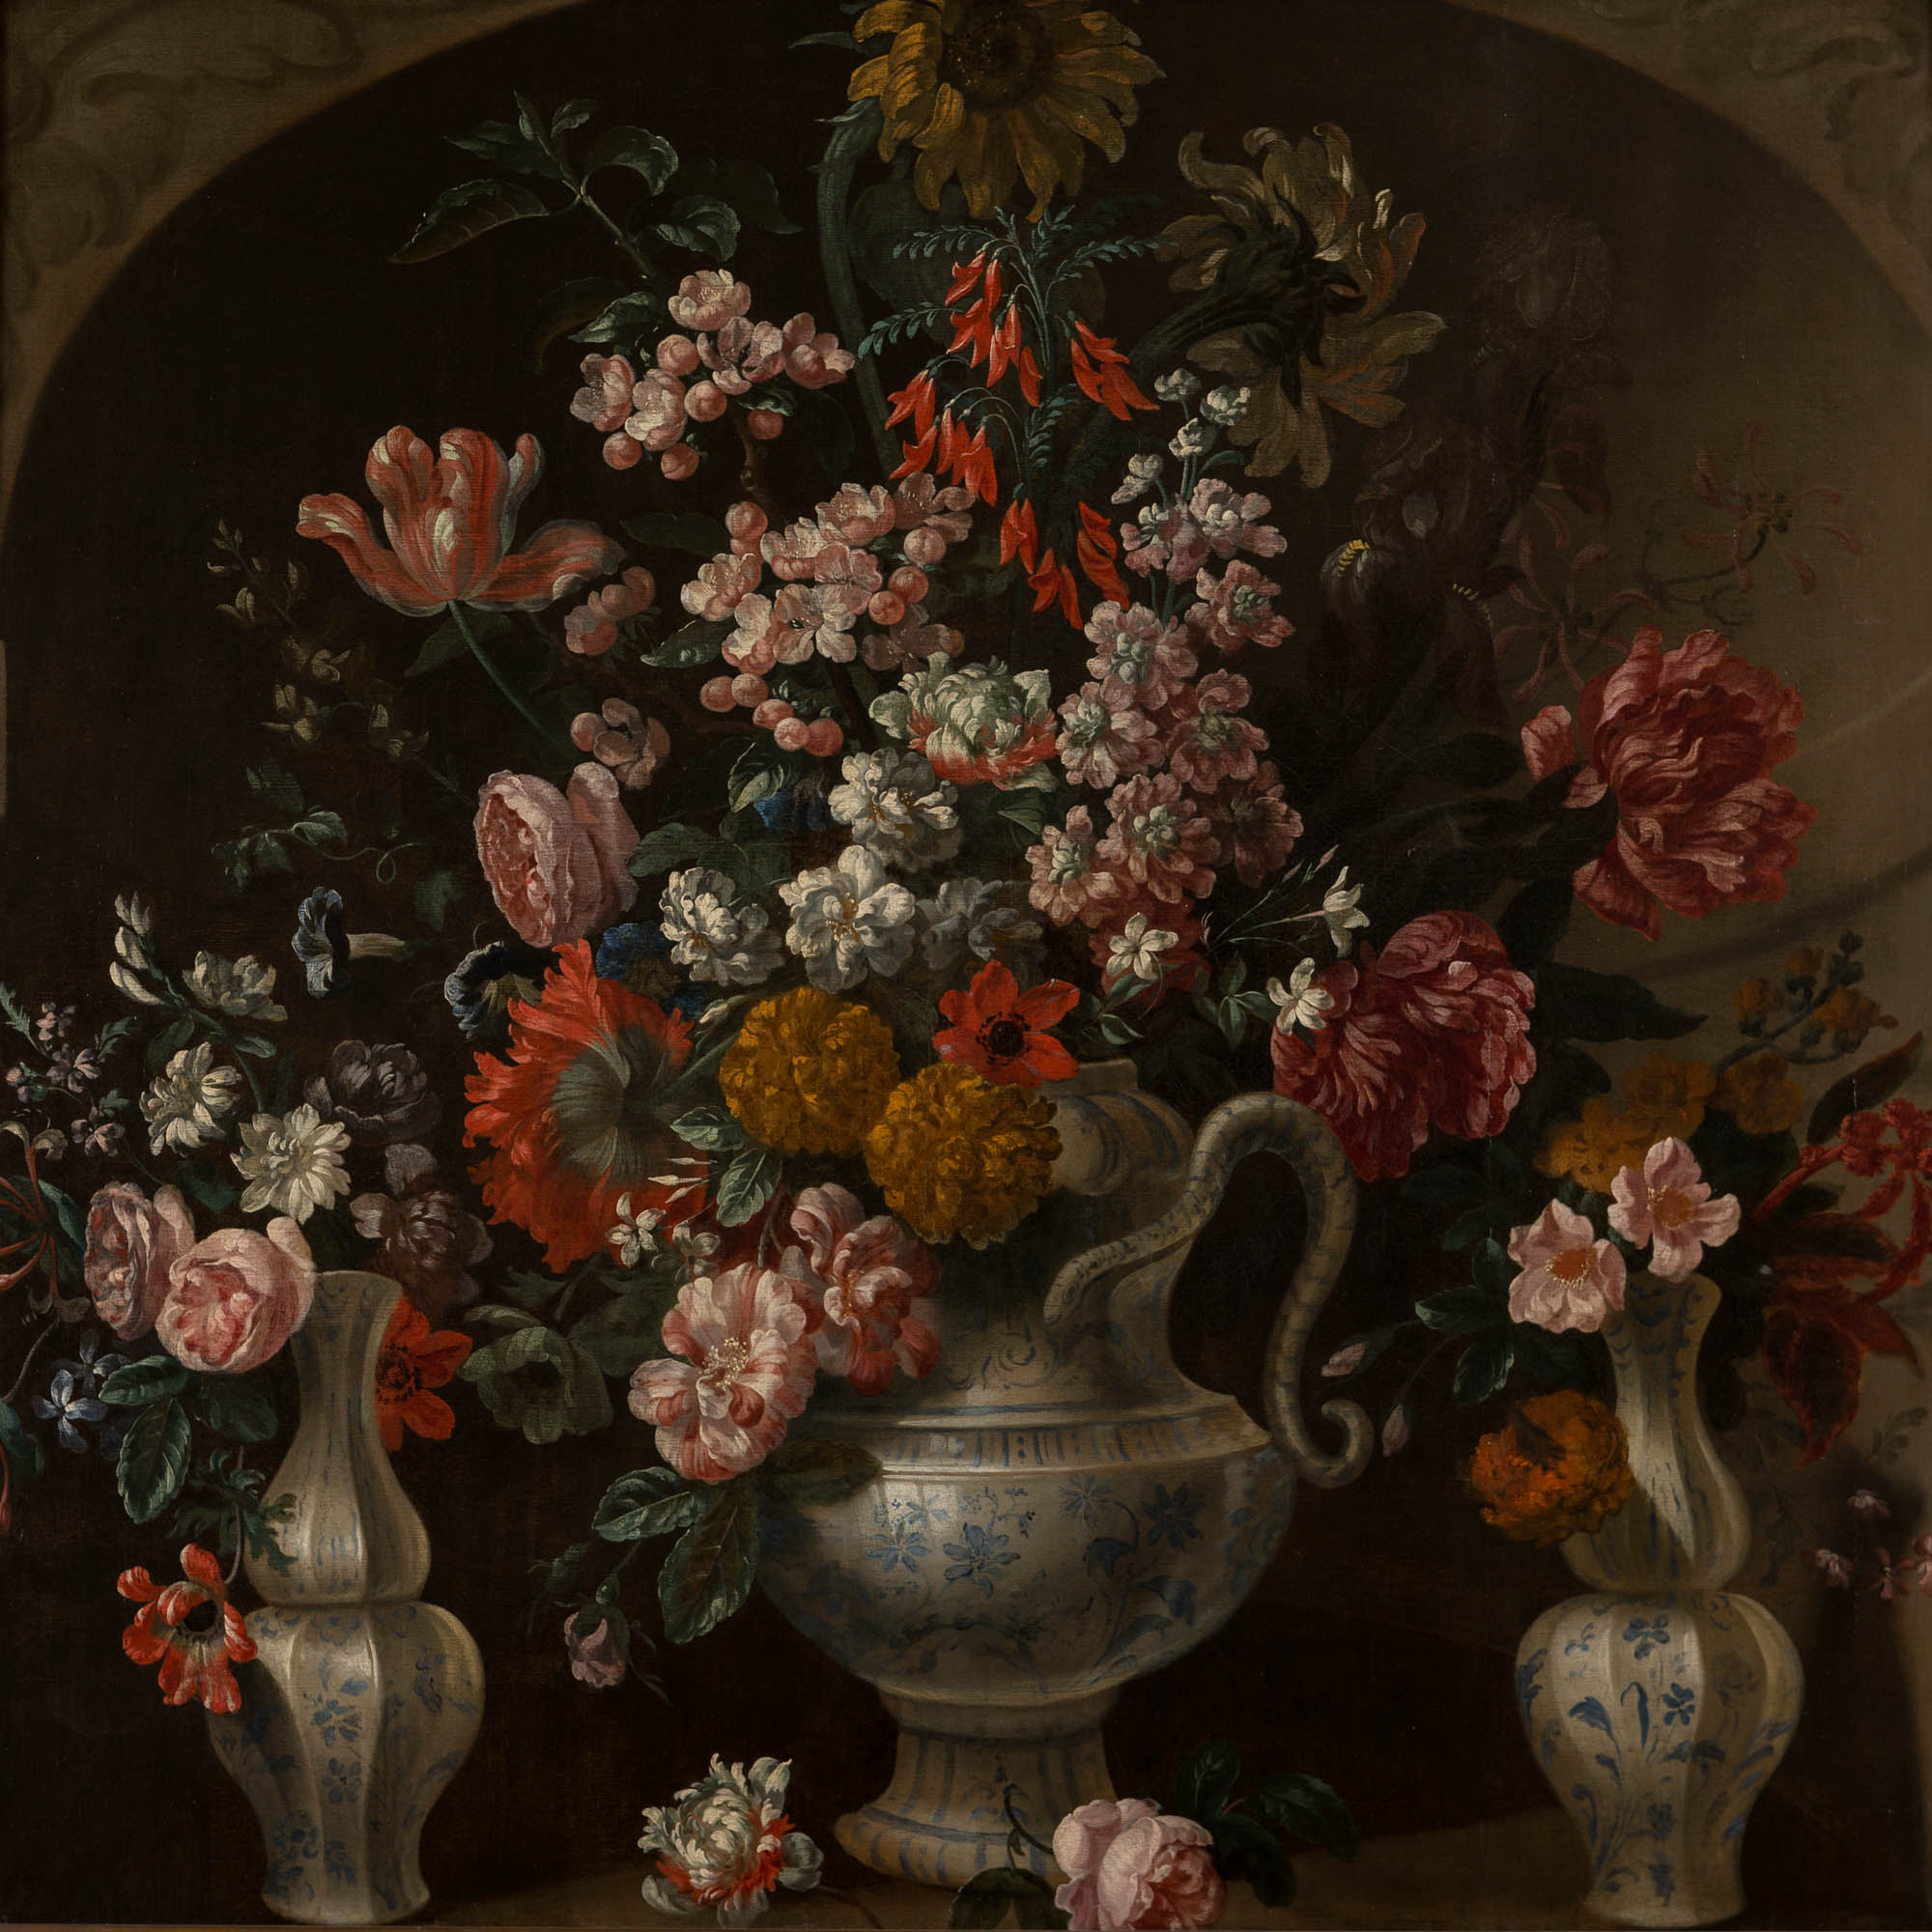 A Still Life of Flowers in Three Blue and White Faience Vases, Circle of Pieter Casteels III (1684-1749).